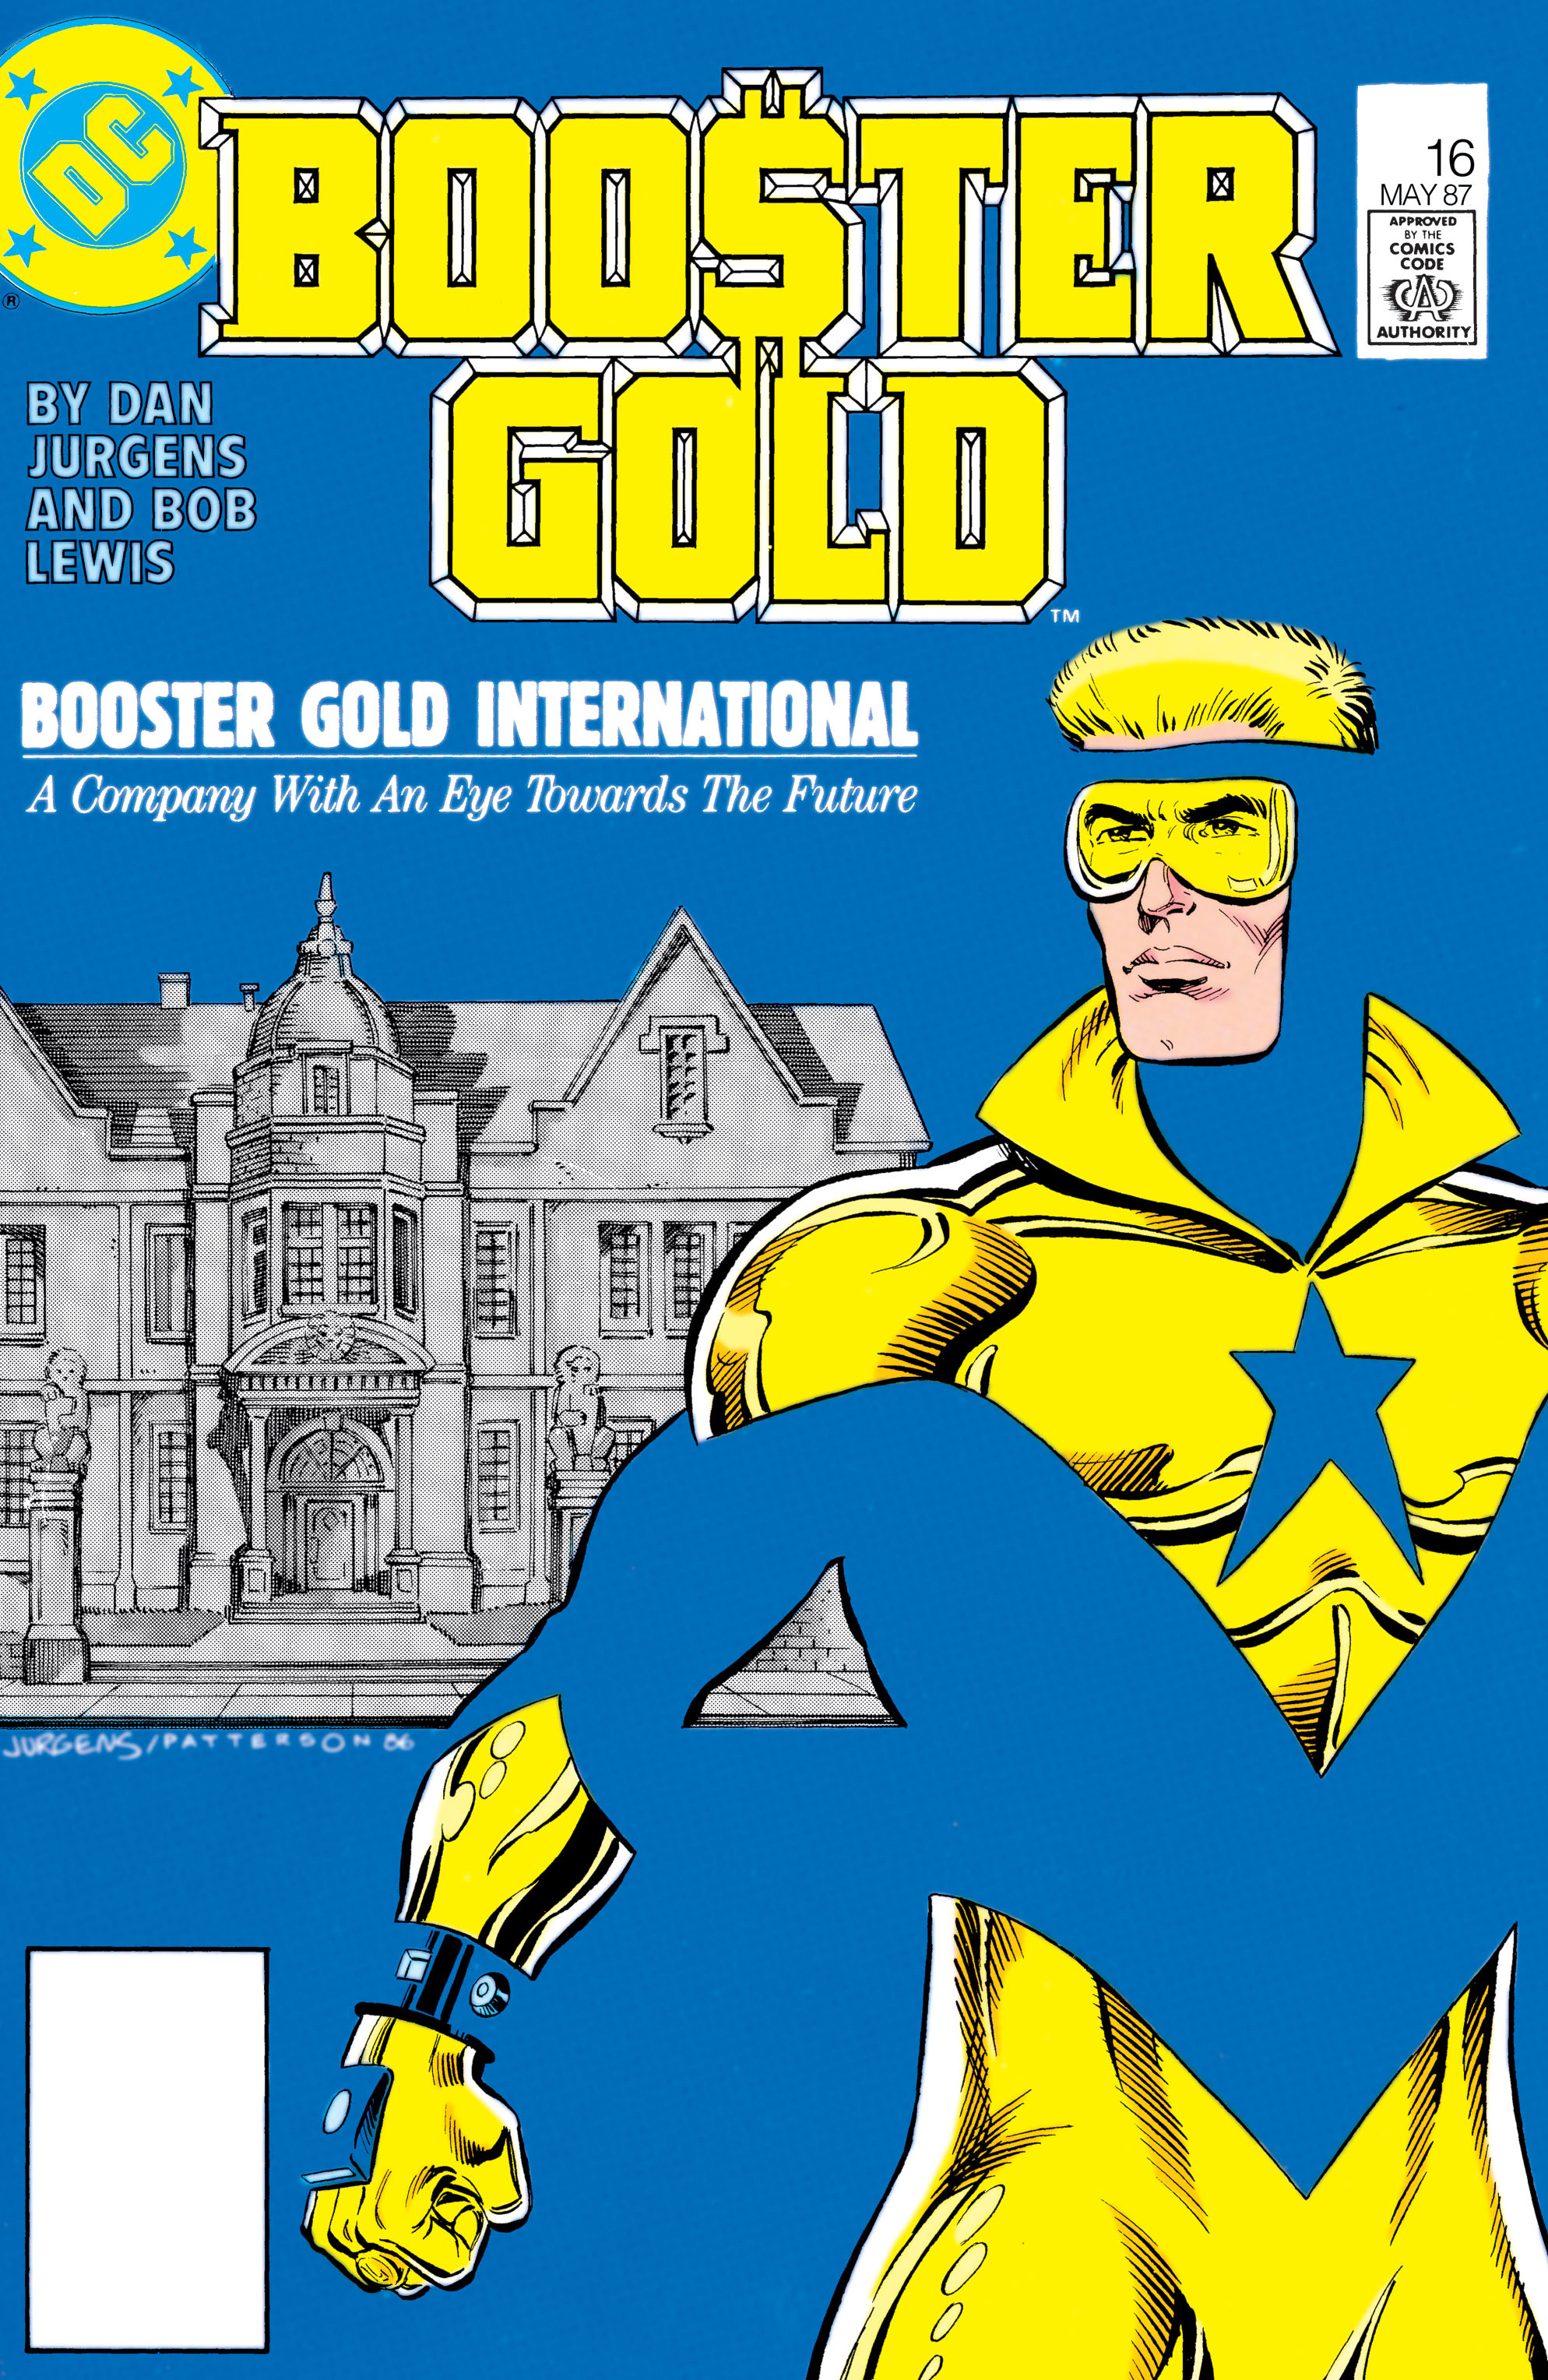 Booster Gold 1986 Issue 16